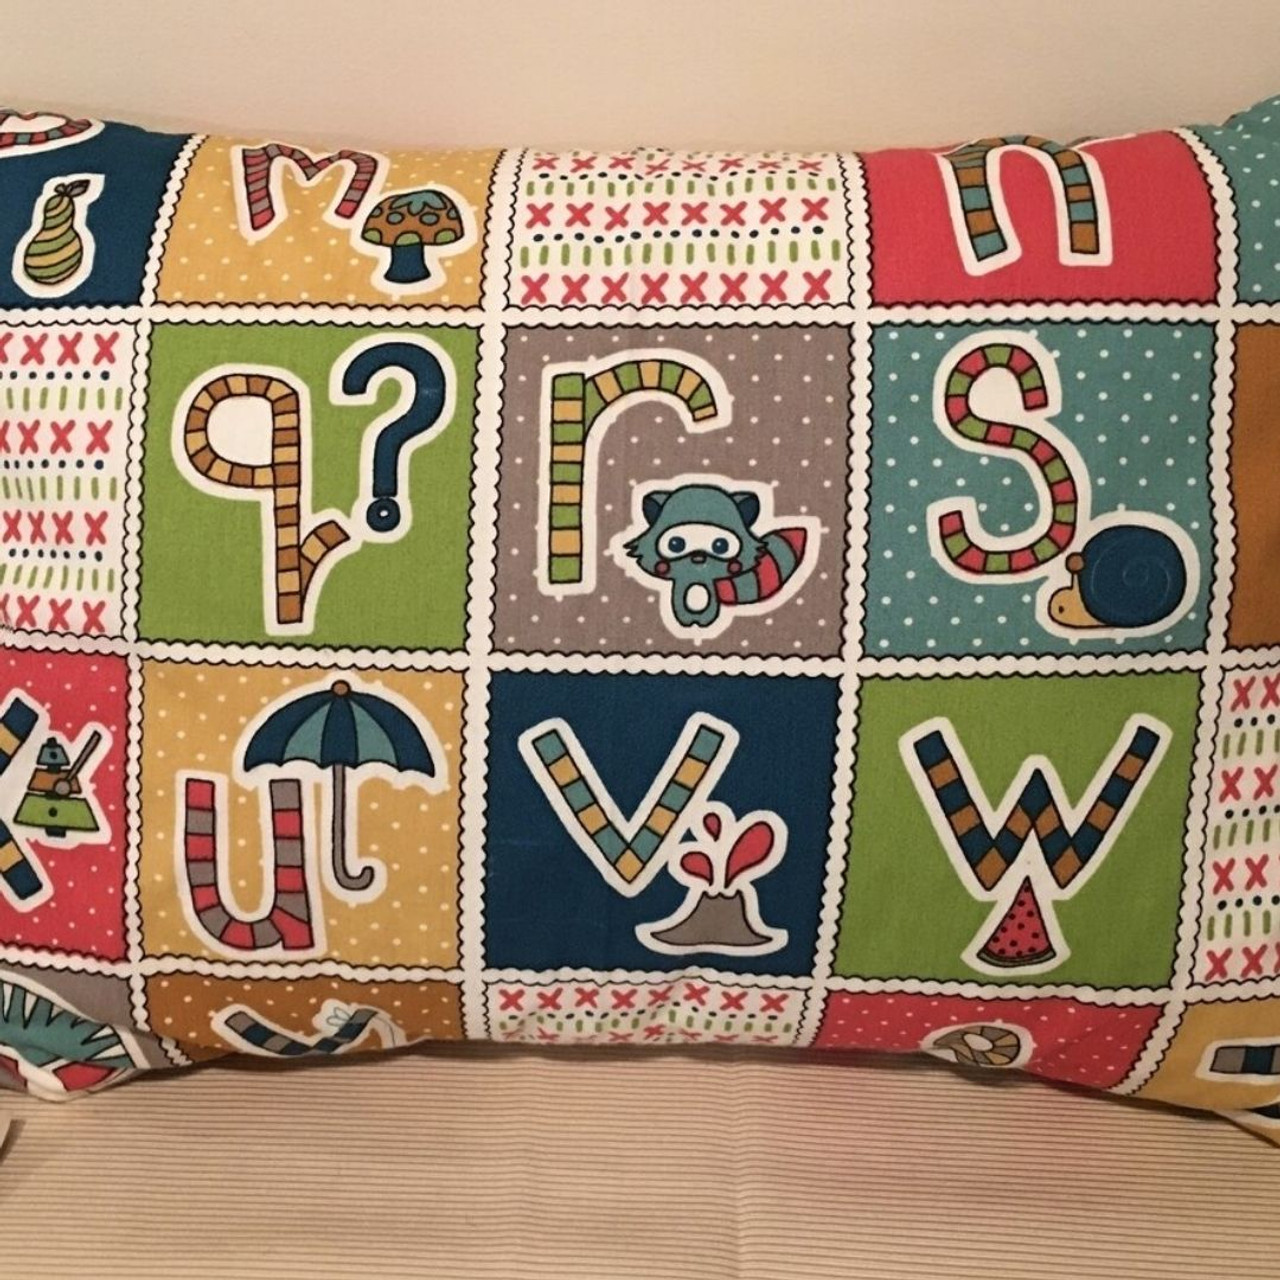 just right pillows for kids with organic cotton covers